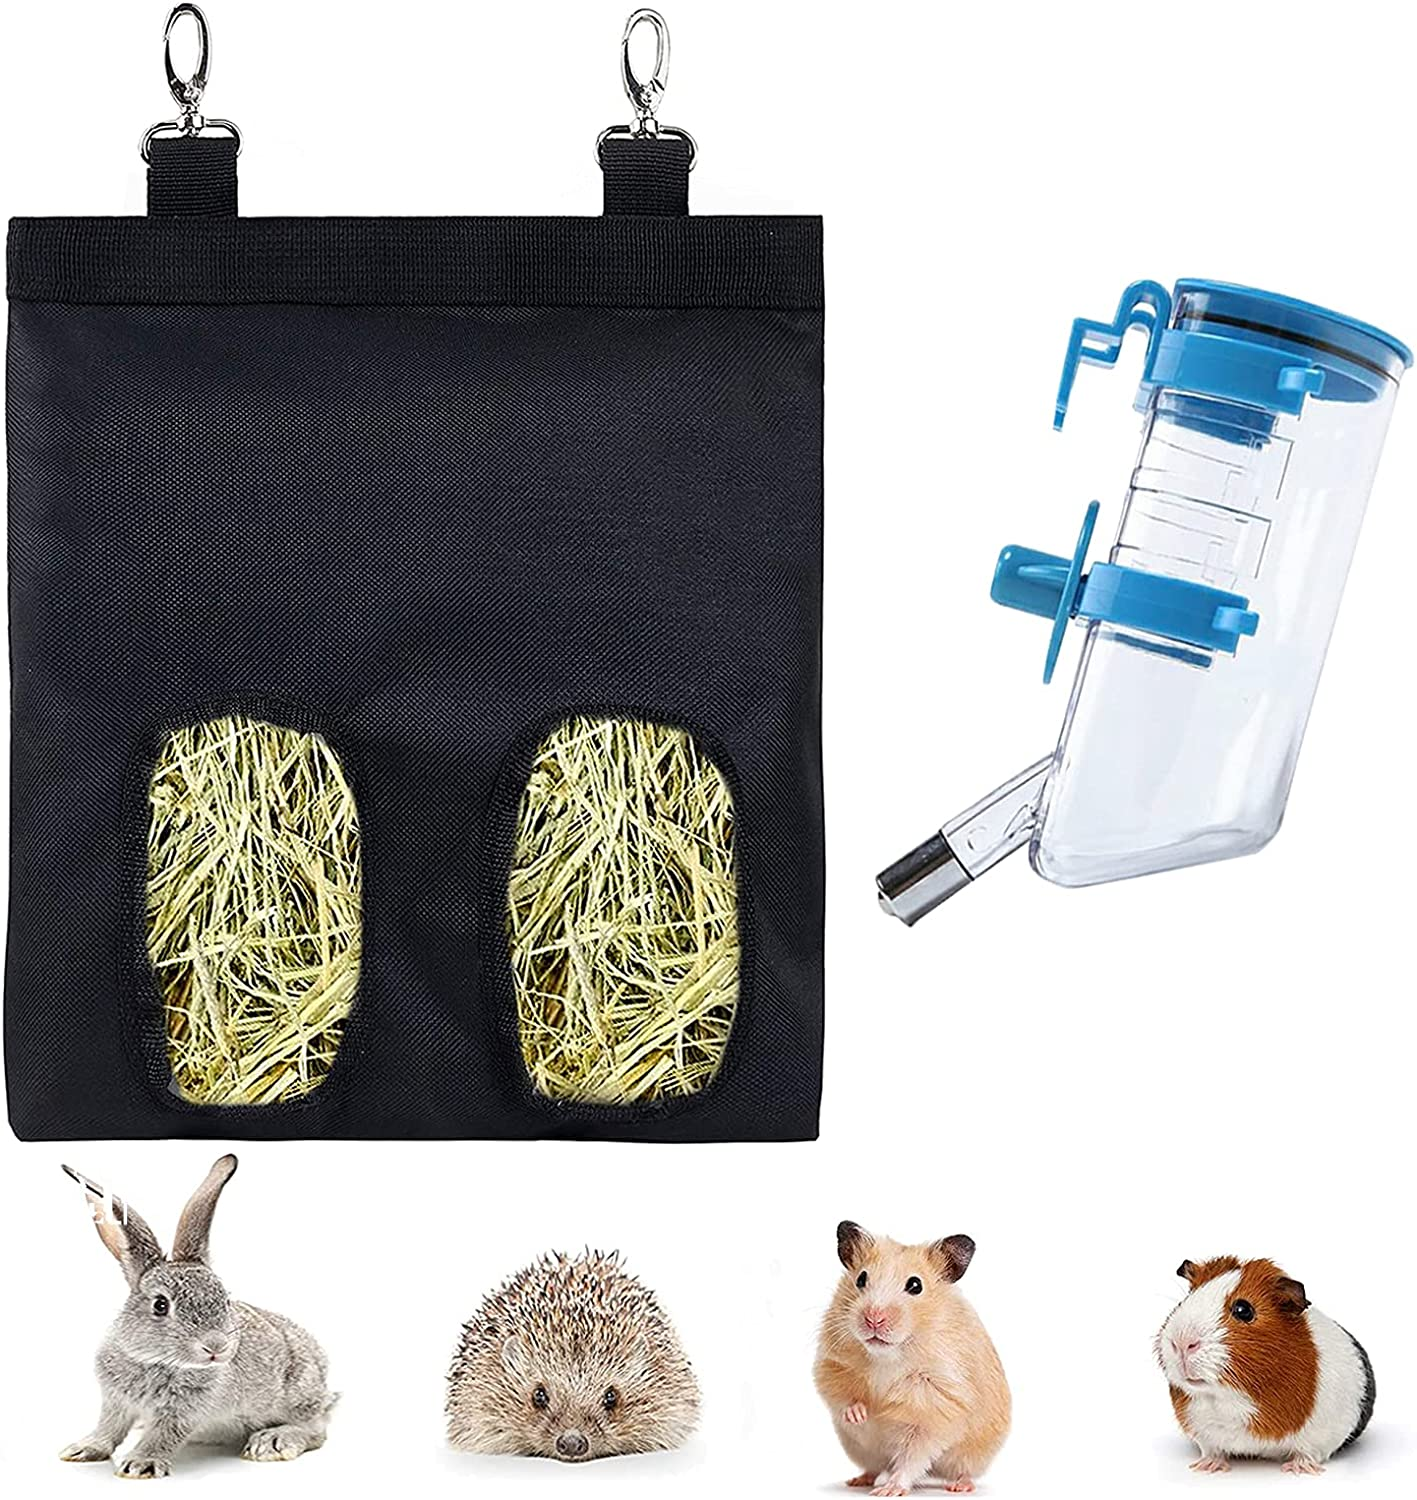 Guinea Pig Feeder Hay Manufacturer direct Weekly update delivery Bag Rabbit with Hanging Au Food Fabric